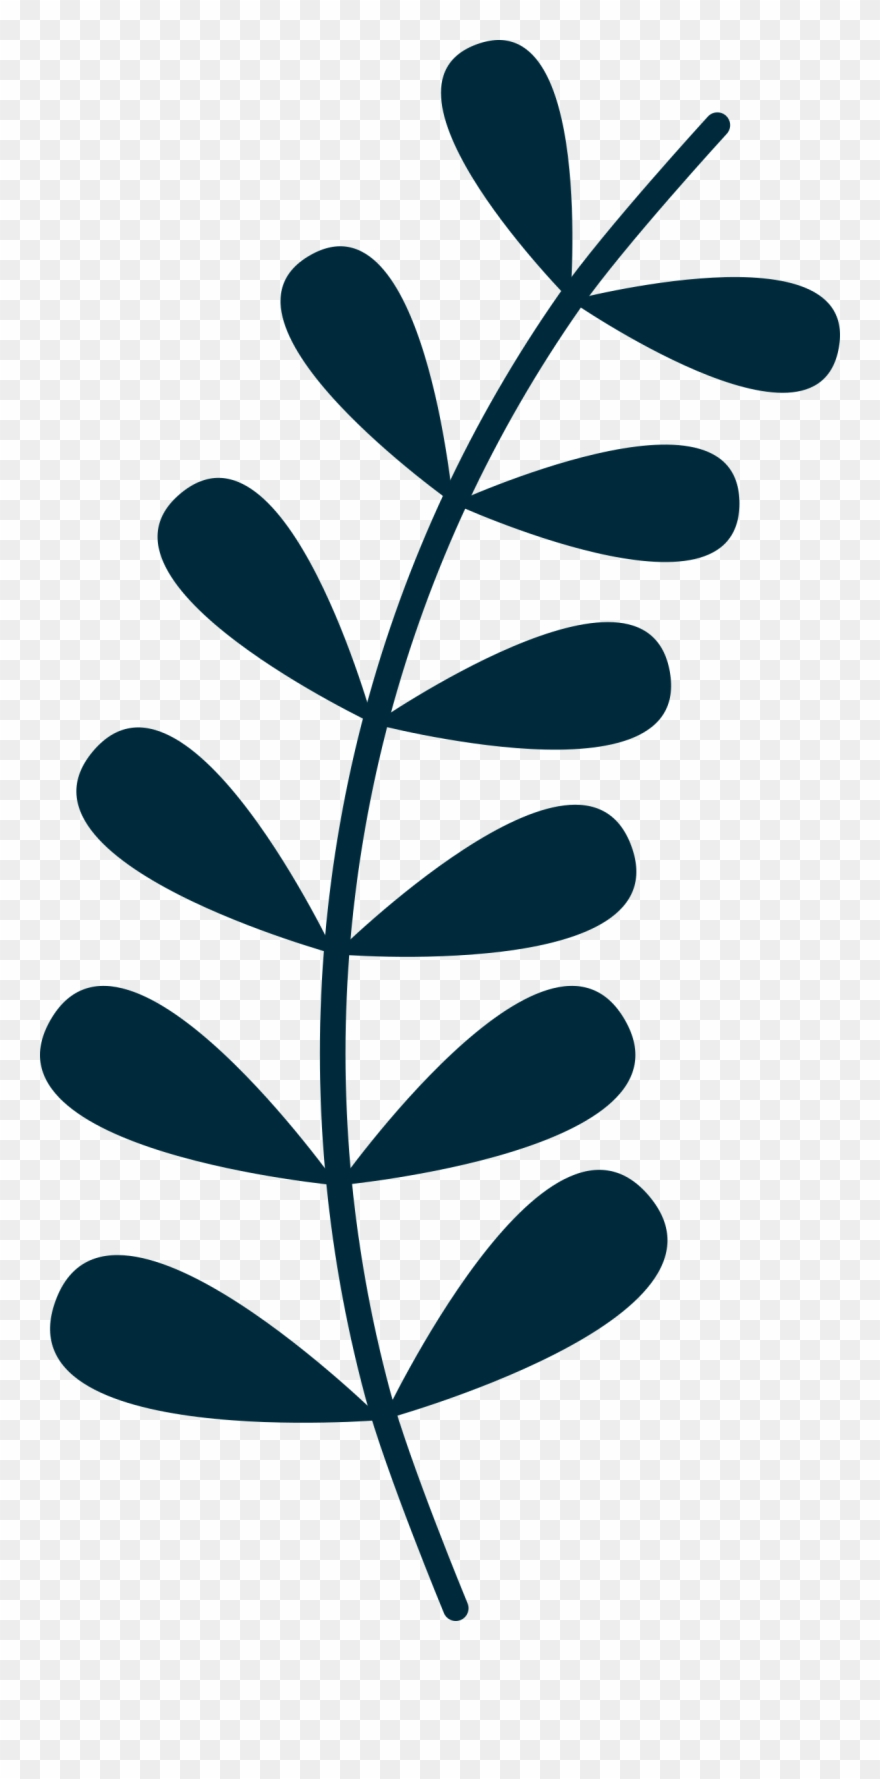 Vine images clipart stock Simple Clipart Vine - Leaves On Vine Clipart - Png Download ... stock